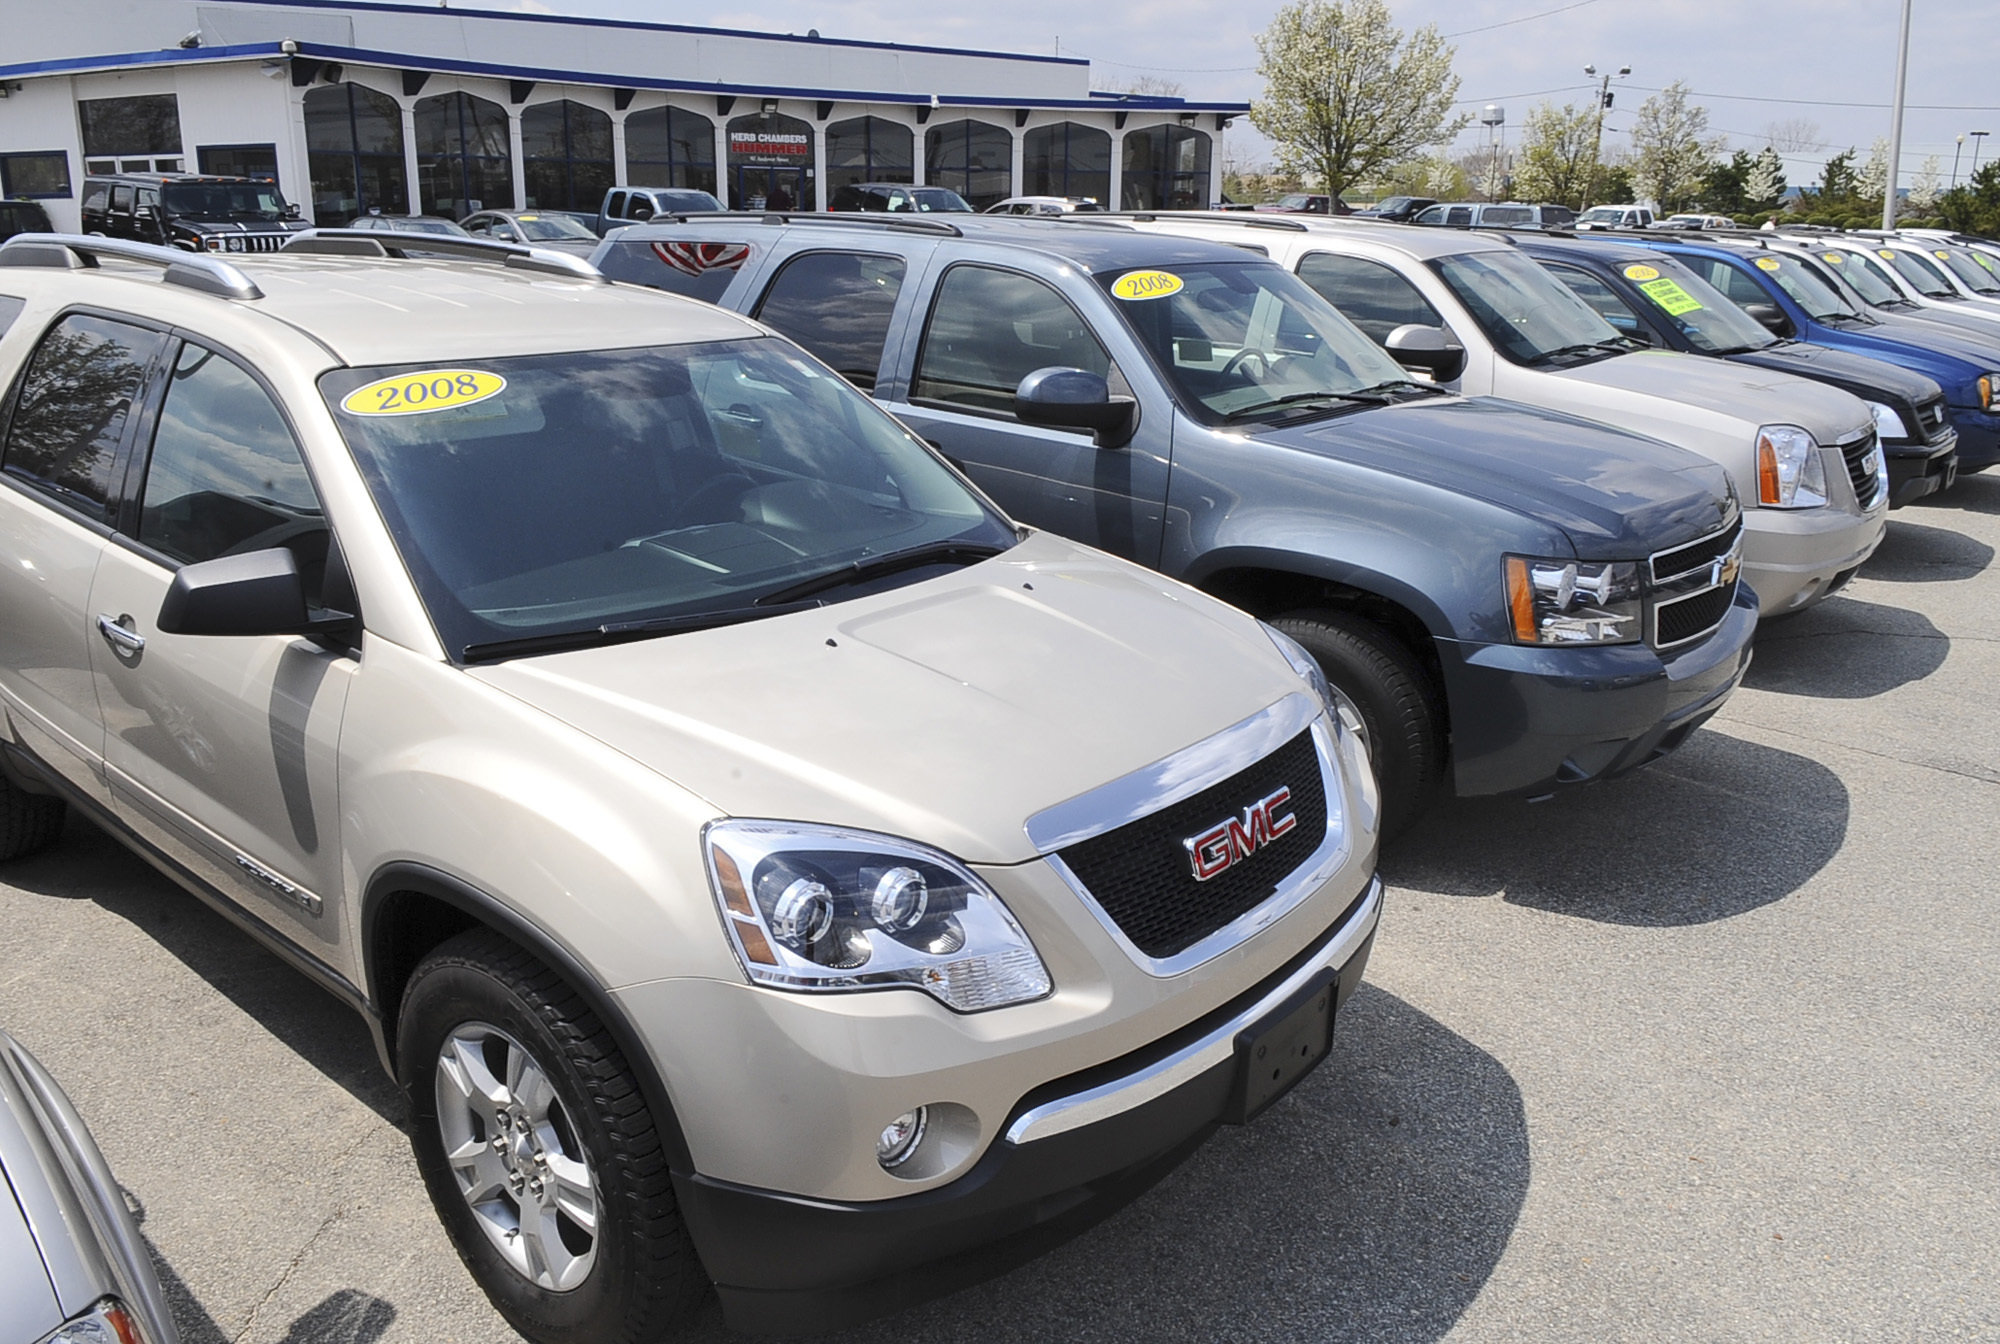 Best Used Cars Under 5000 Best Of Used Cars Nj New Used Cars Nj Under 3000 New Used Cars Near Me Under